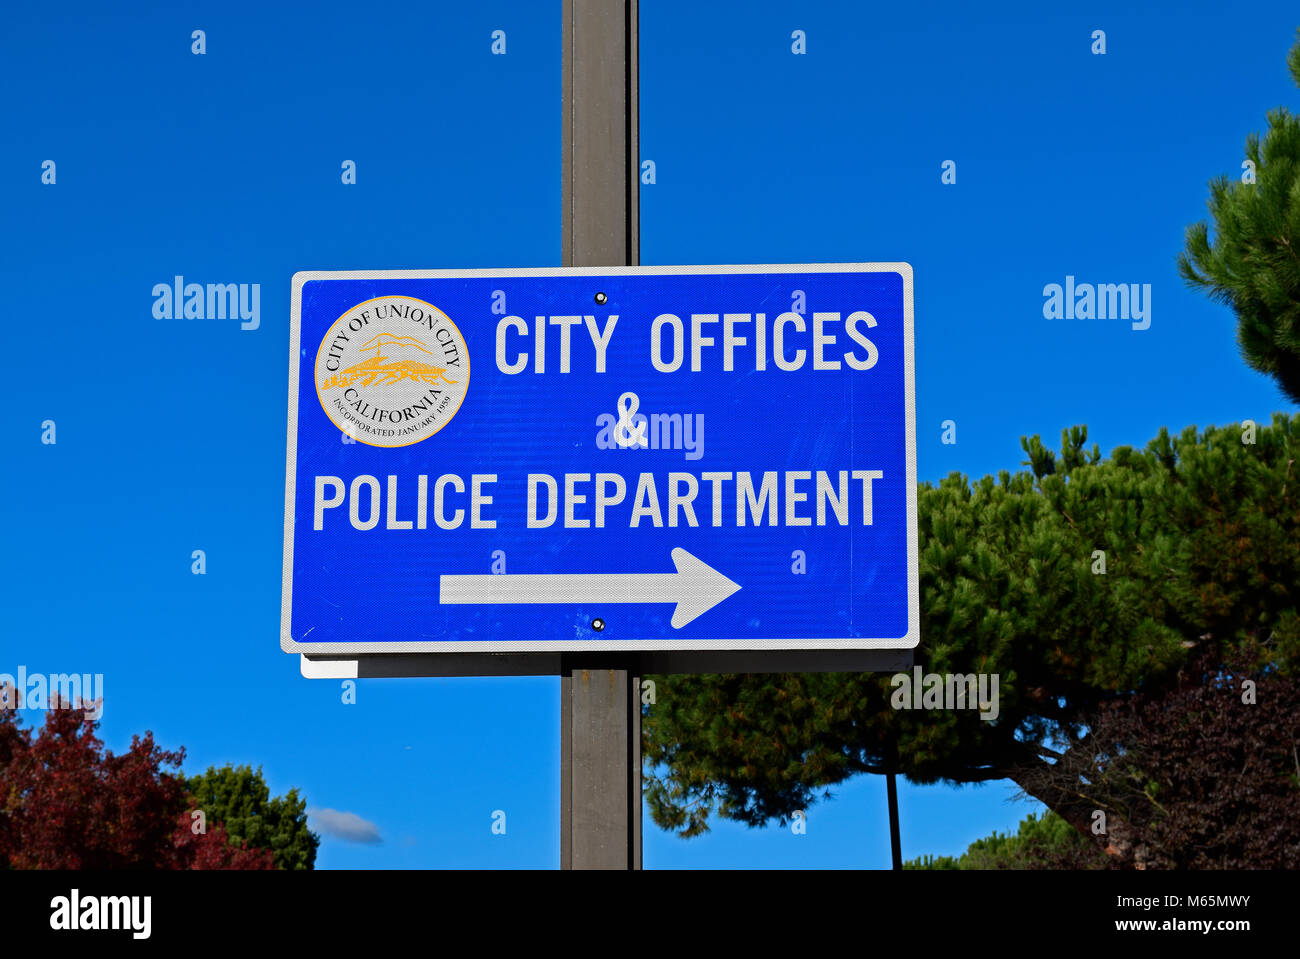 Union City, City offices police department direction arrow